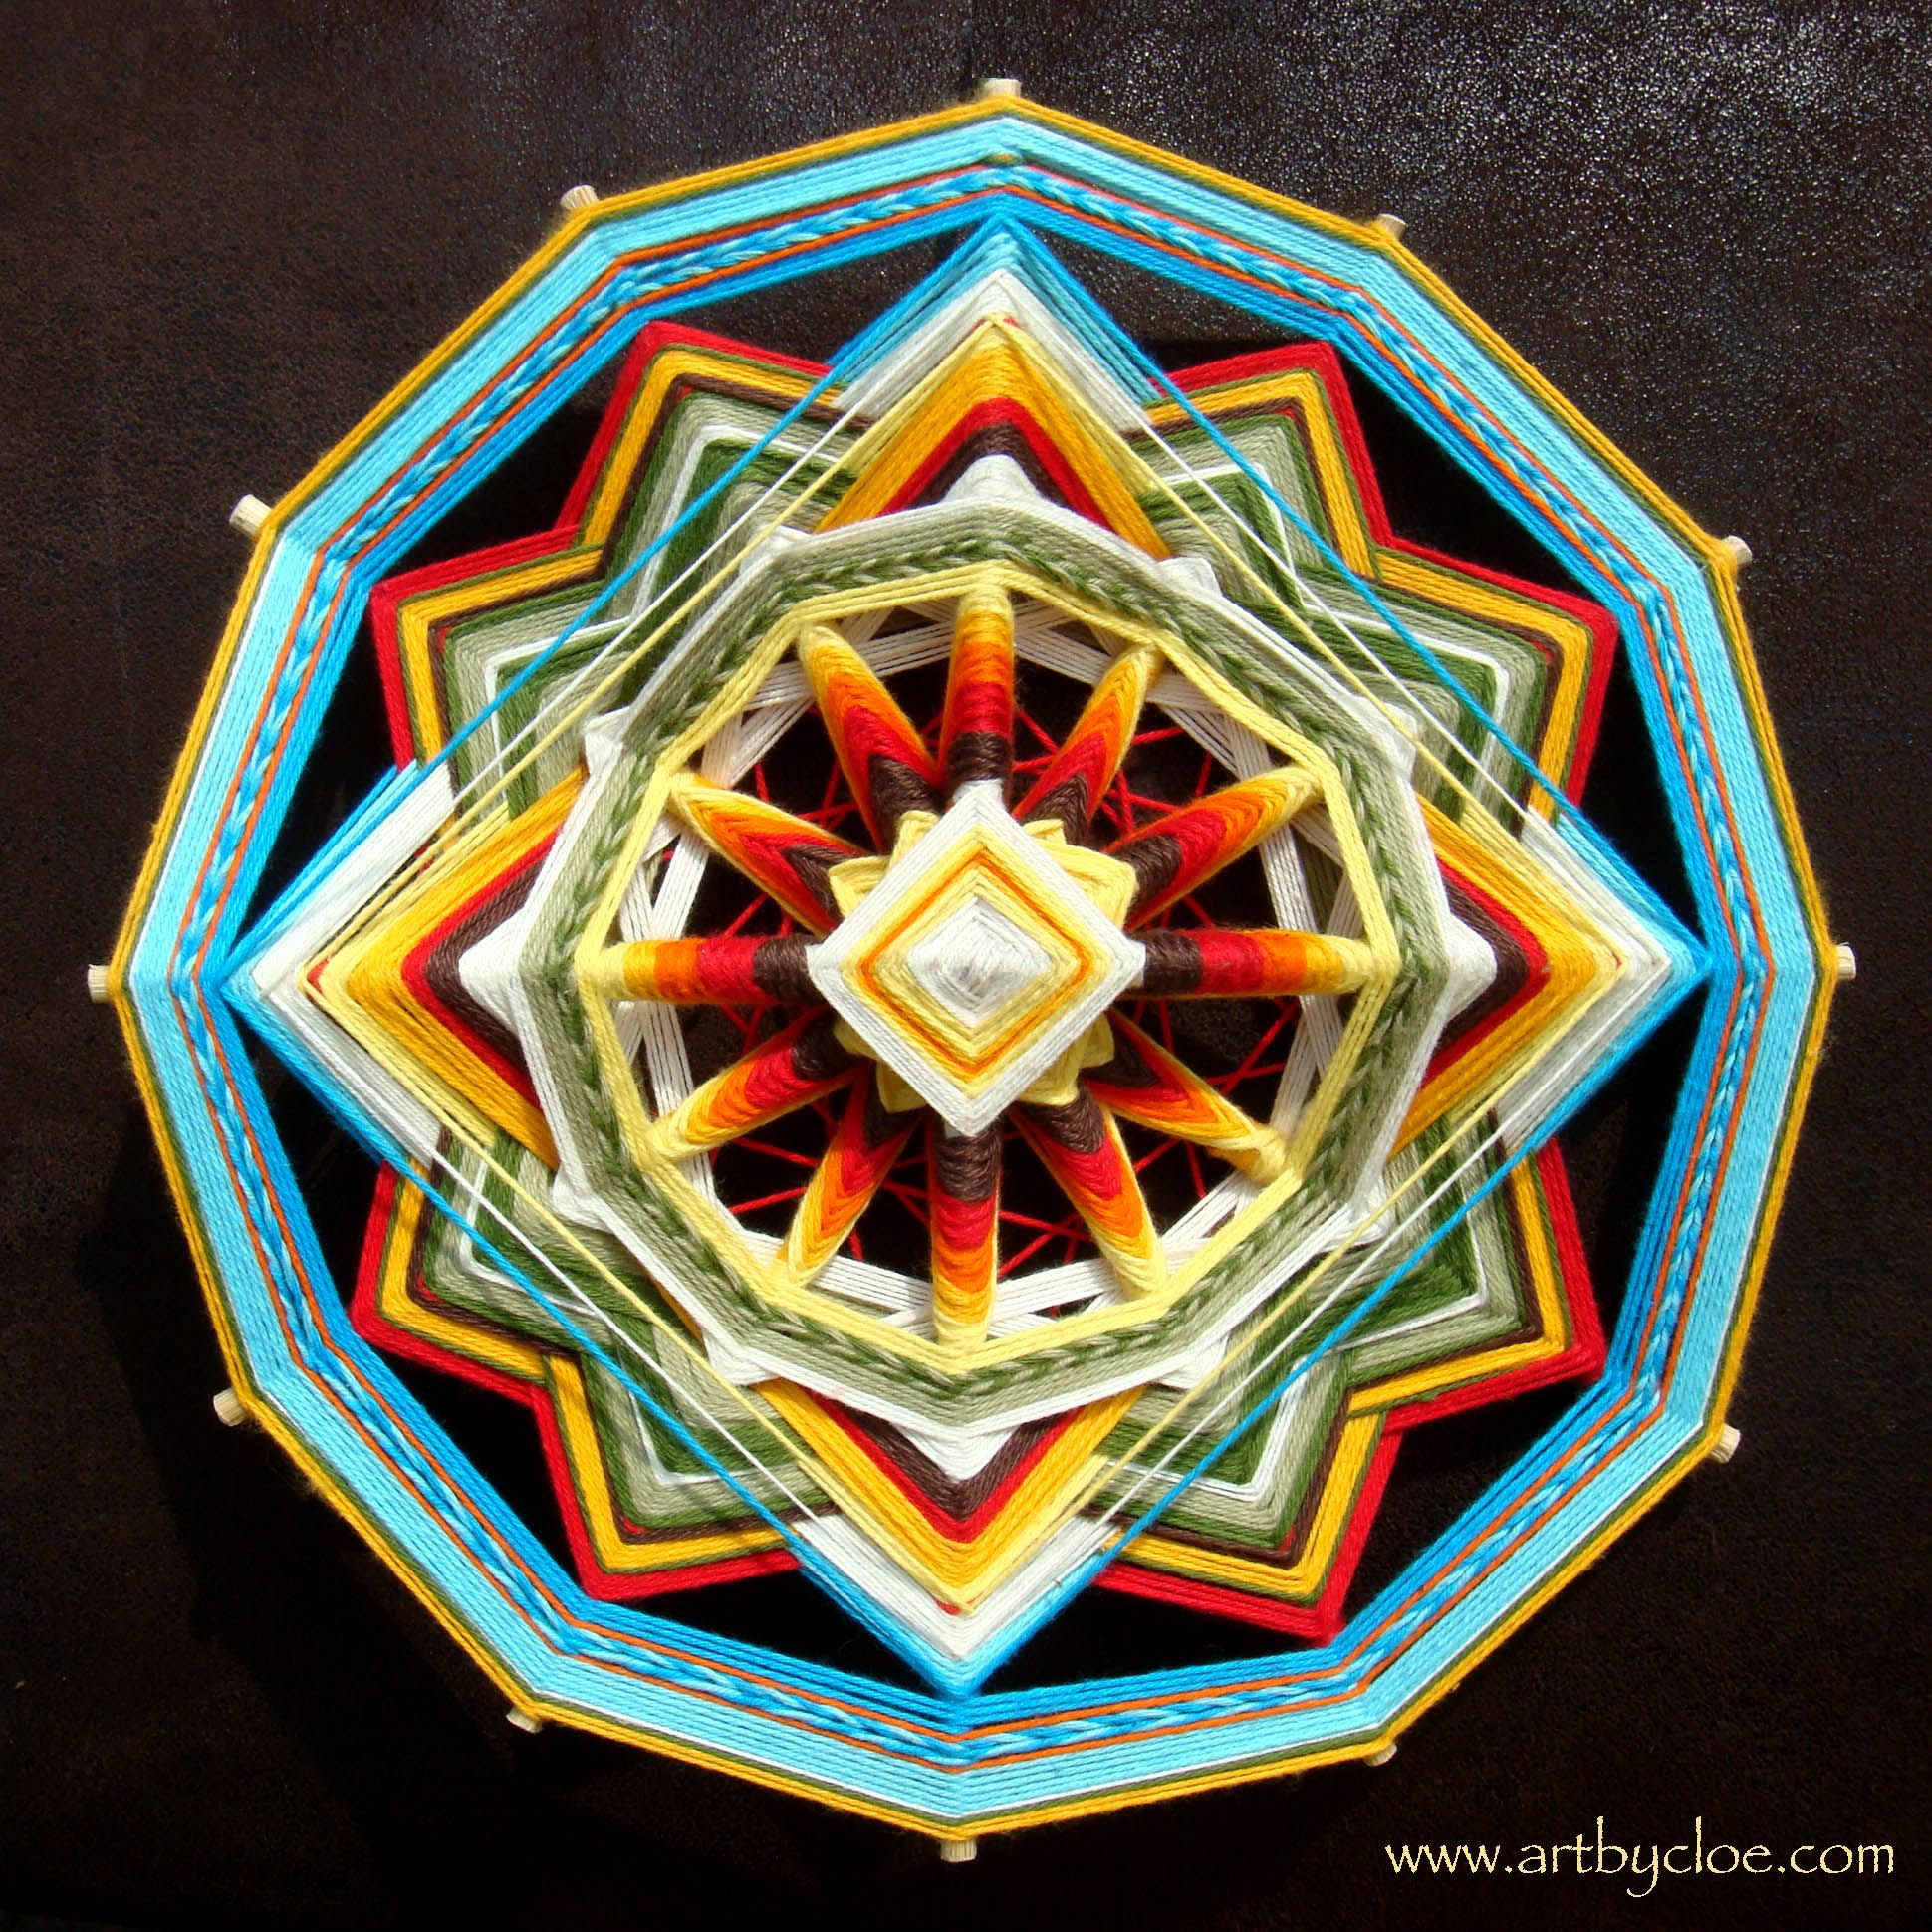 Round wooden sticks for crafts - Weaving Mandala From Cotton Yarn And Wooden Sticks You Can Use Barbeque Sticks Or Single